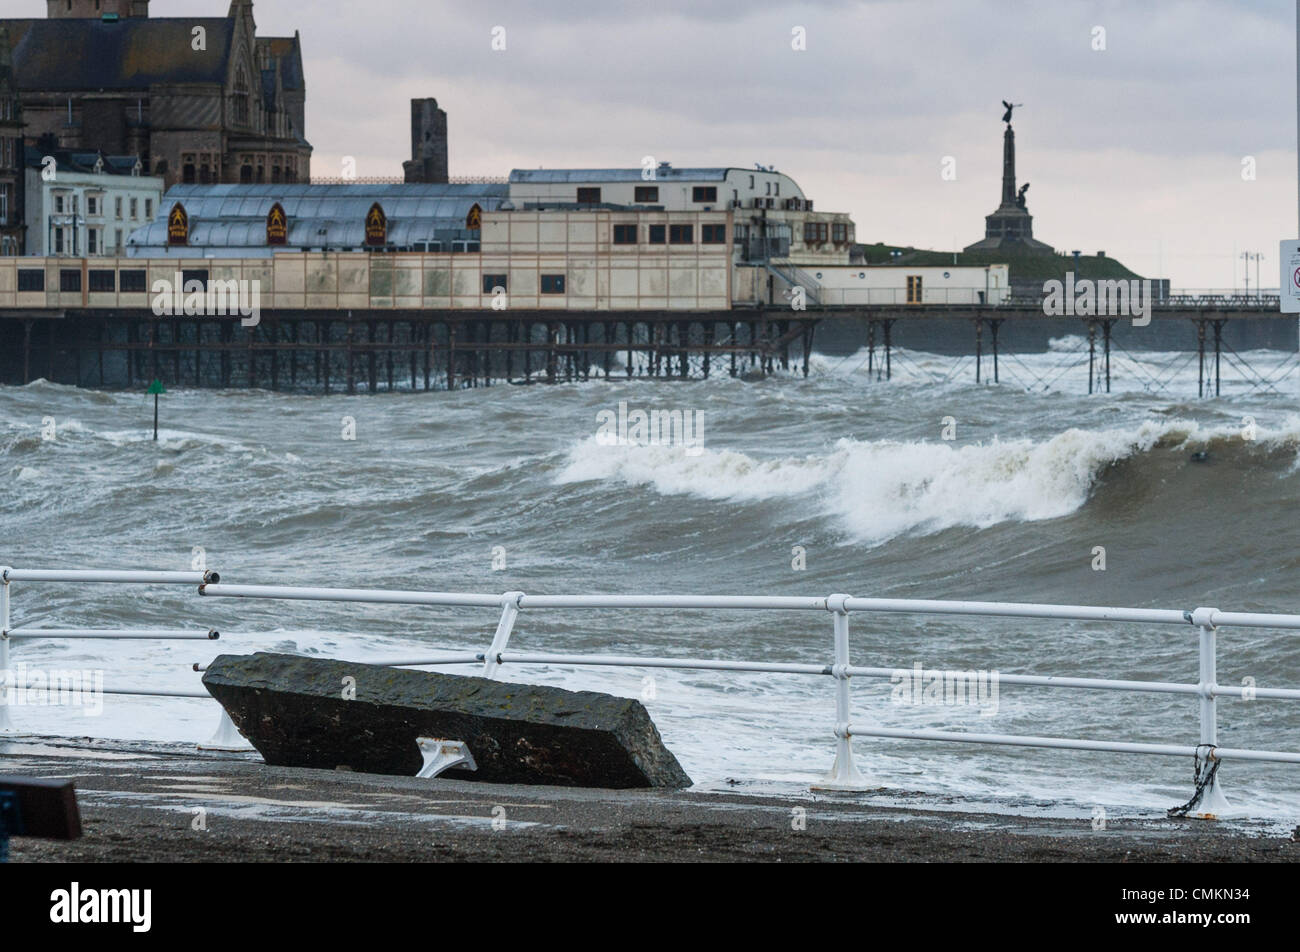 Aberystwyth Wales UK , Sunday 3 November 2013  The morning after the 80mph winds and huge waves struck Aberystwyth - Stock Image